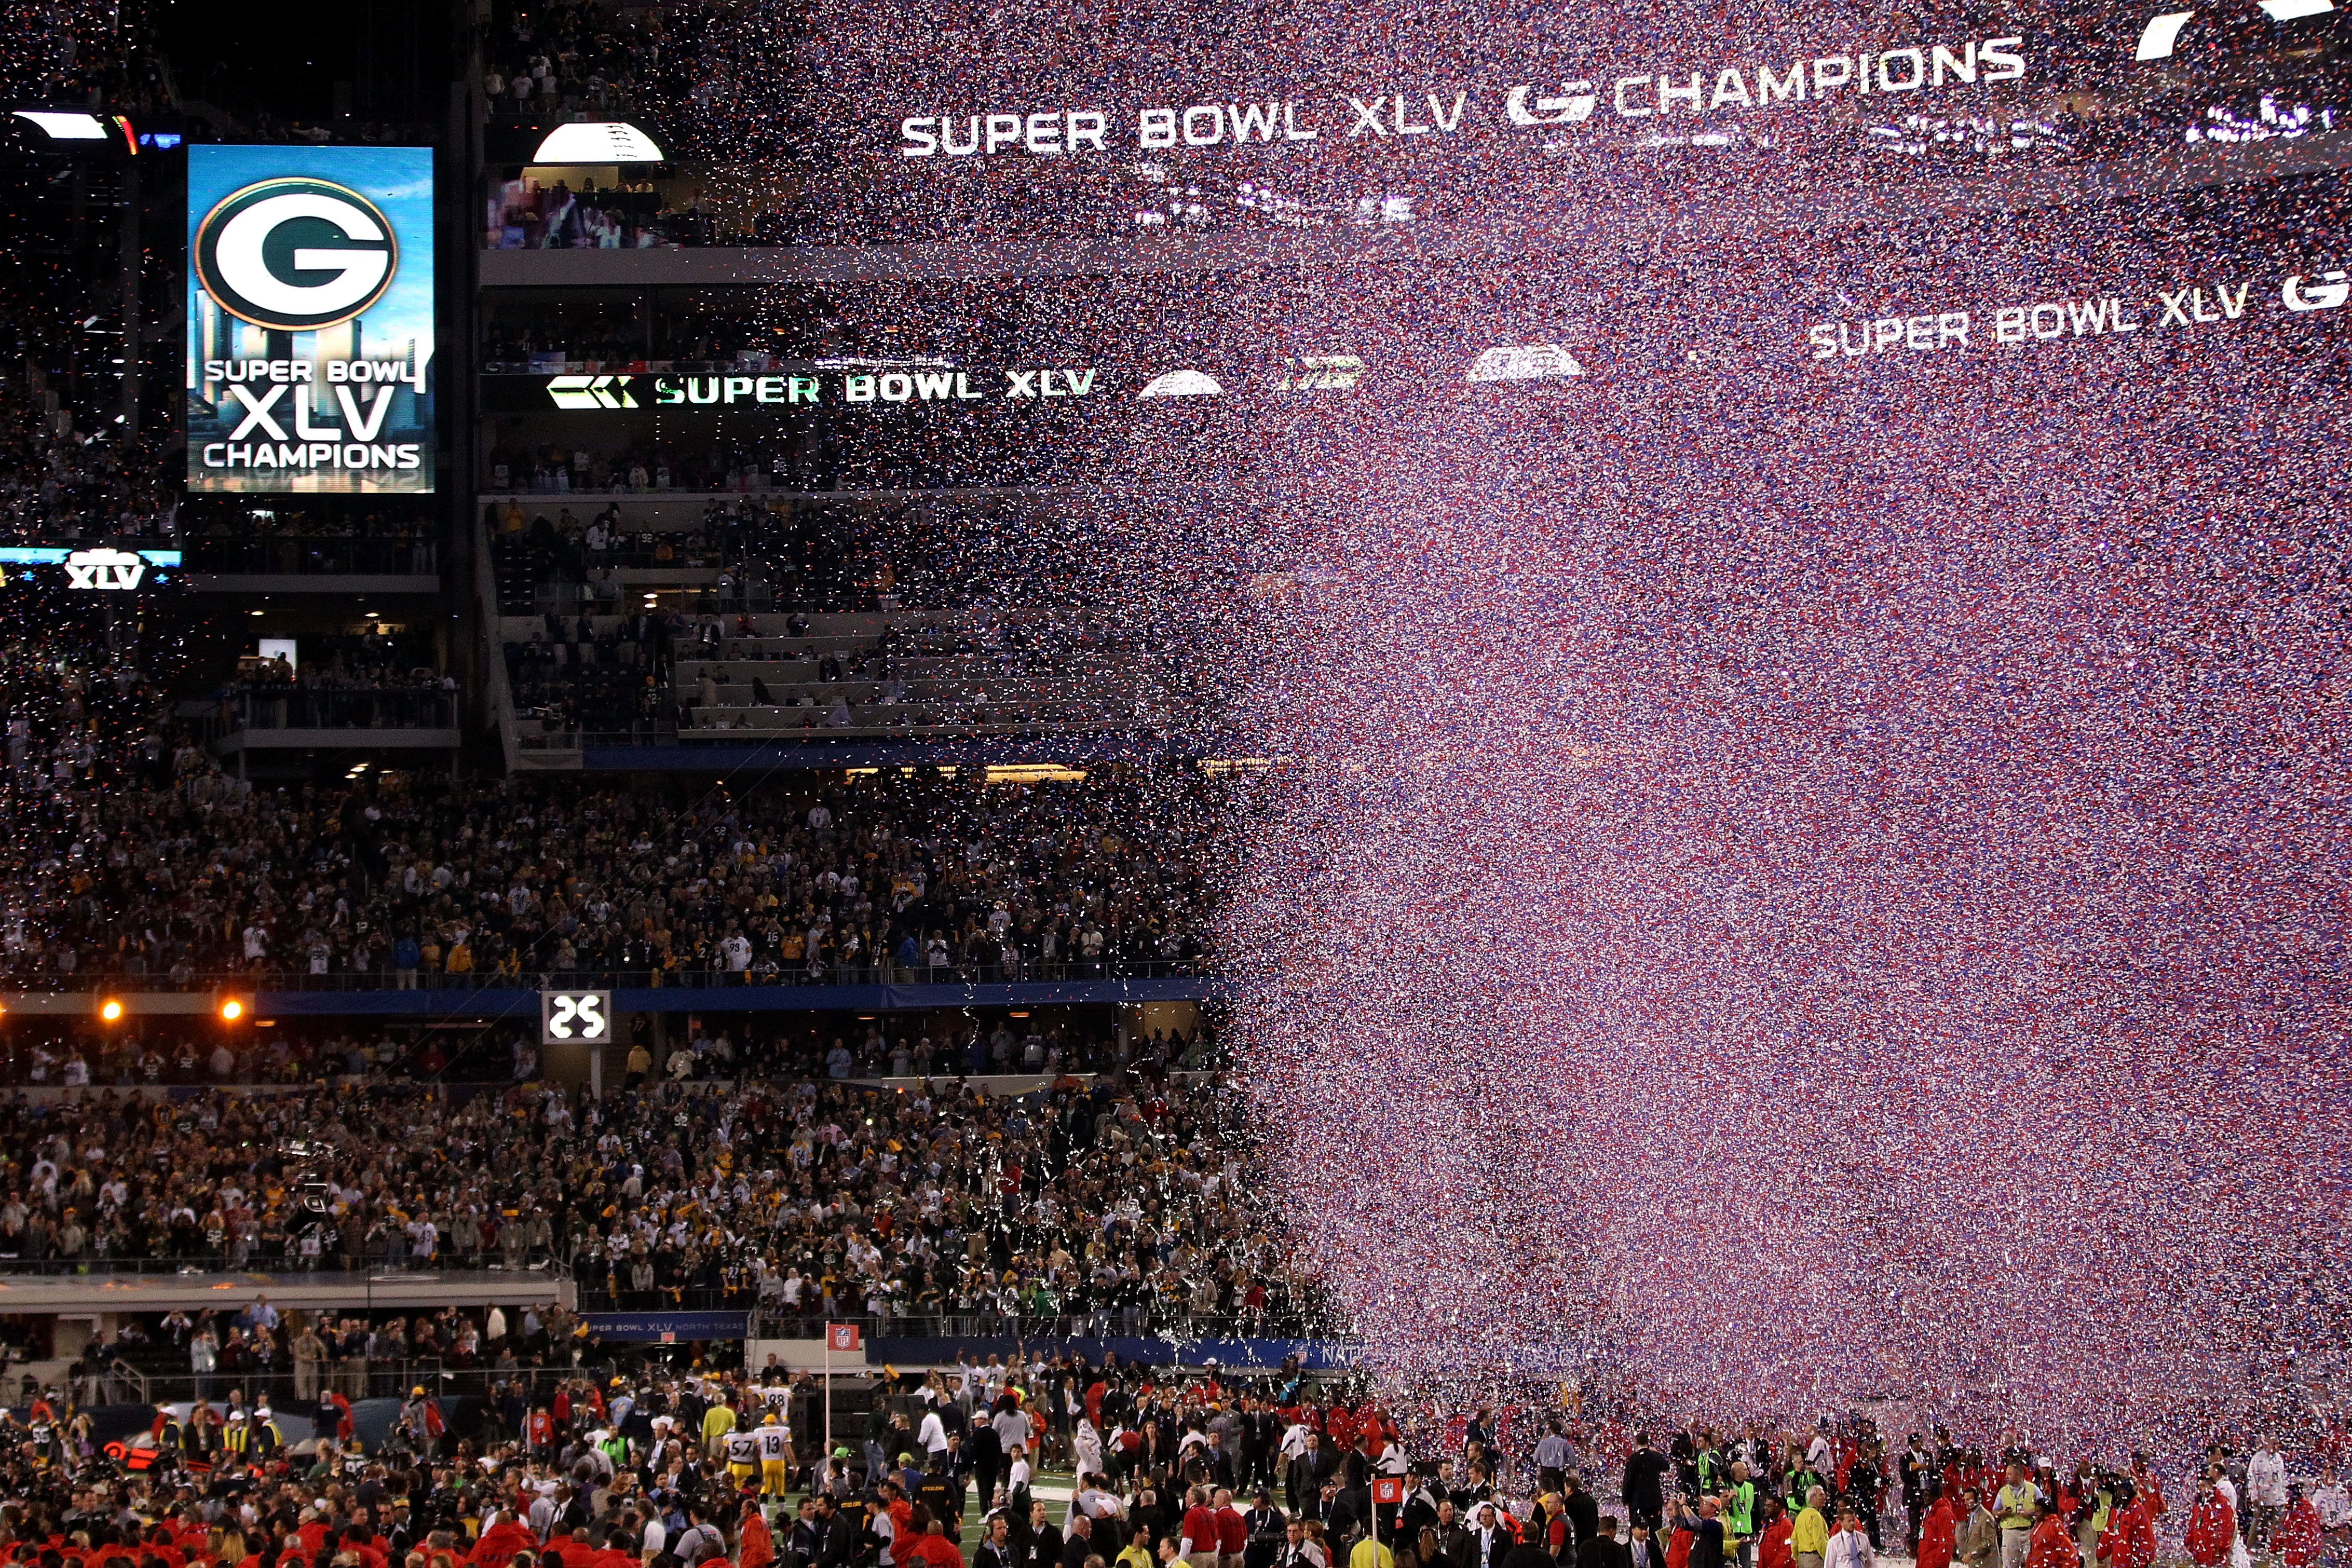 ARLINGTON, TX - FEBRUARY 06: Confetti falls after the Green Bay Packers win Super Bowl XLV against the Pittsburgh Steelers at Cowboys Stadium on February 6, 2011 in Arlington, Texas.  (Photo by Streeter Lecka/Getty Images)